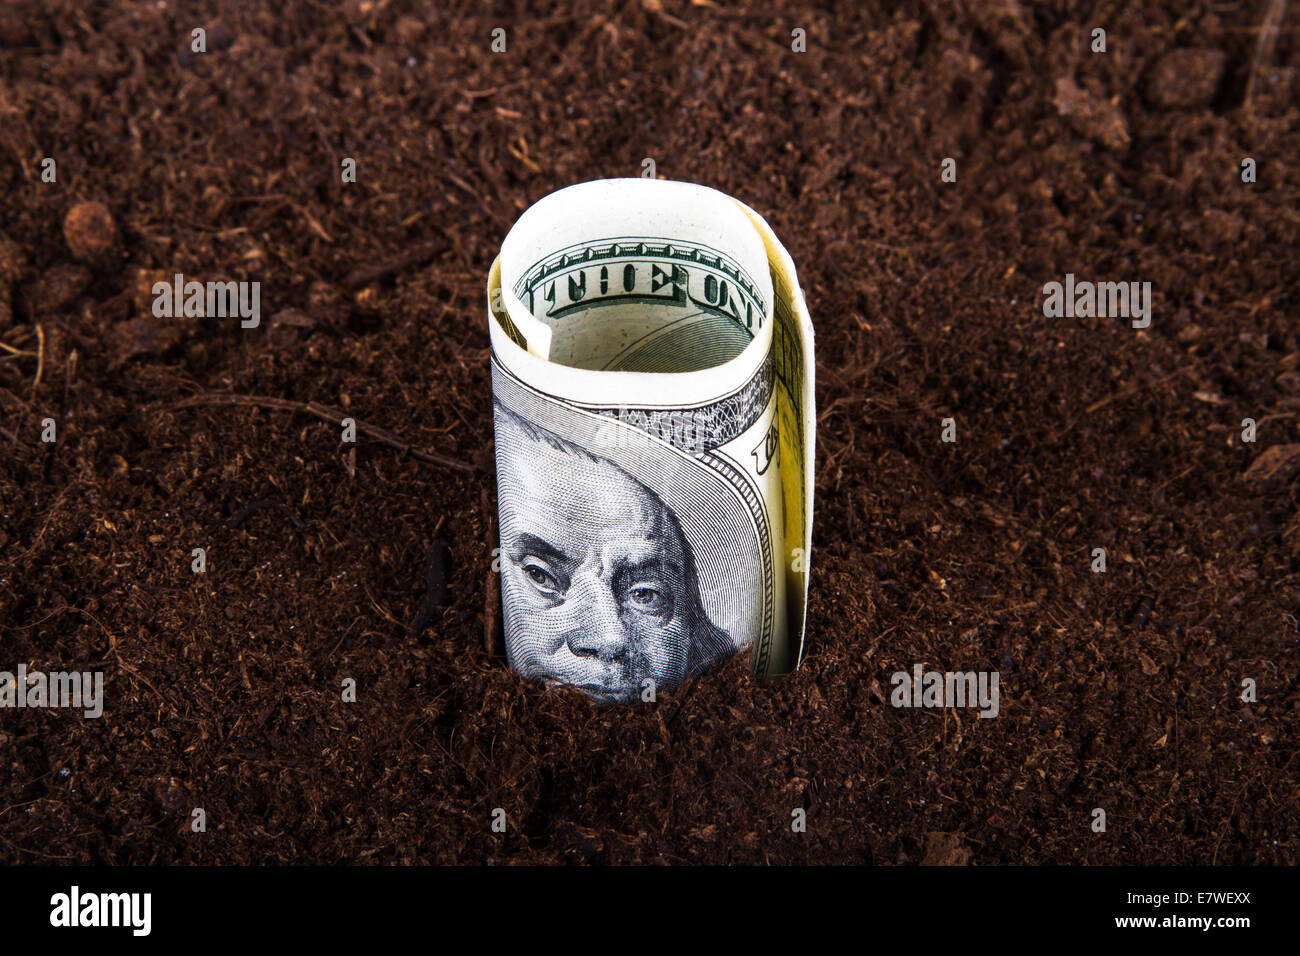 One hundred dollar bill money growing in soil. - Stock Image